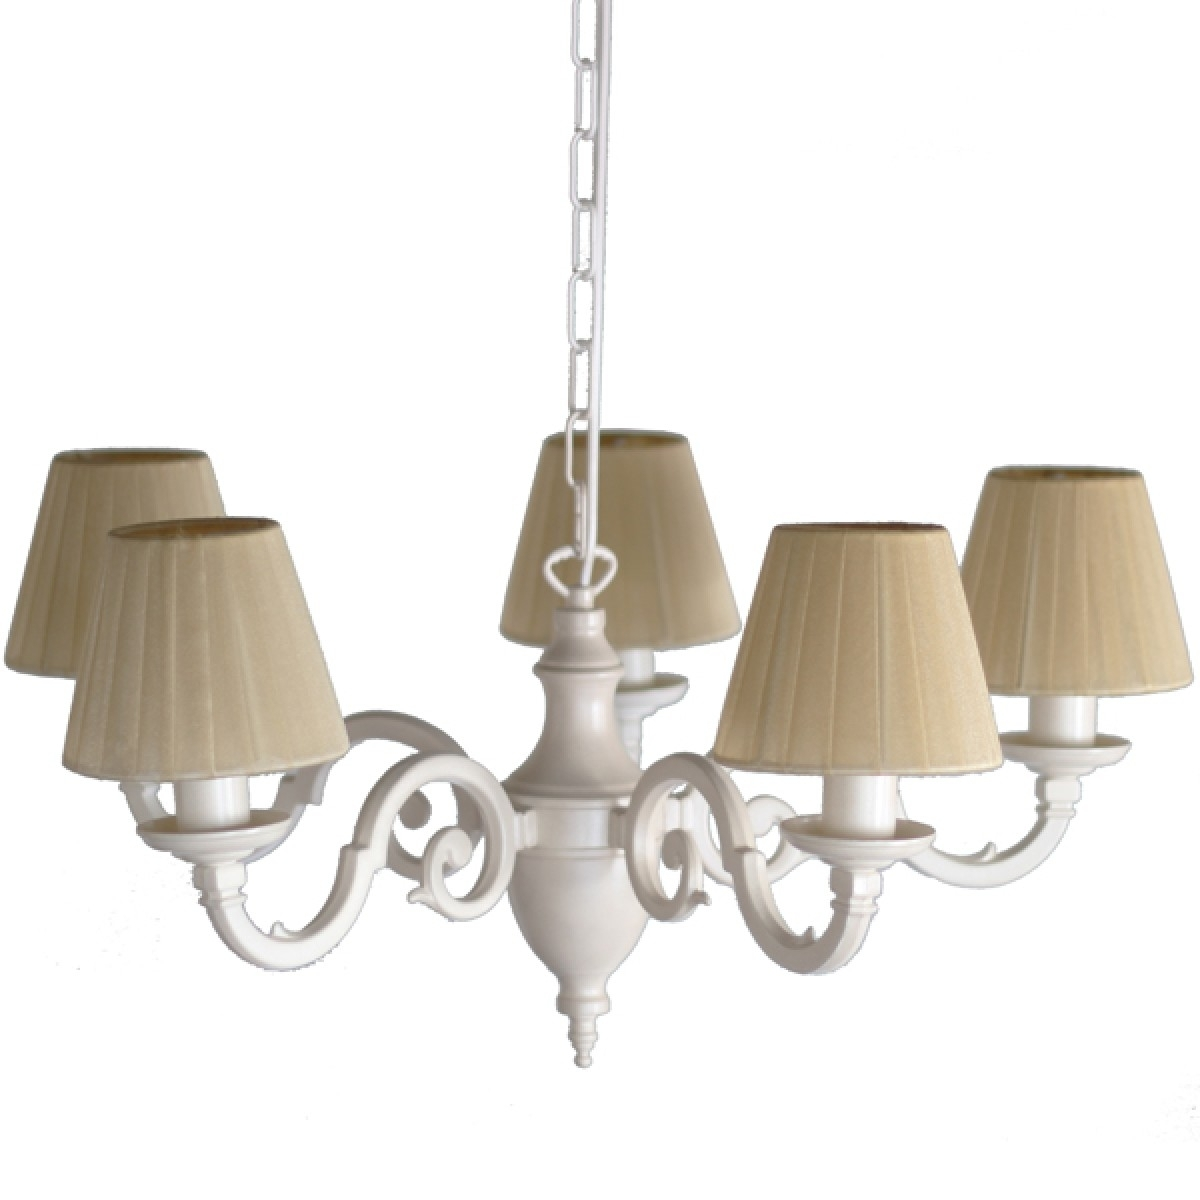 Cream Chandeliers Pertaining To Most Recent Bedroom Light Fitting Chandelier (View 7 of 20)